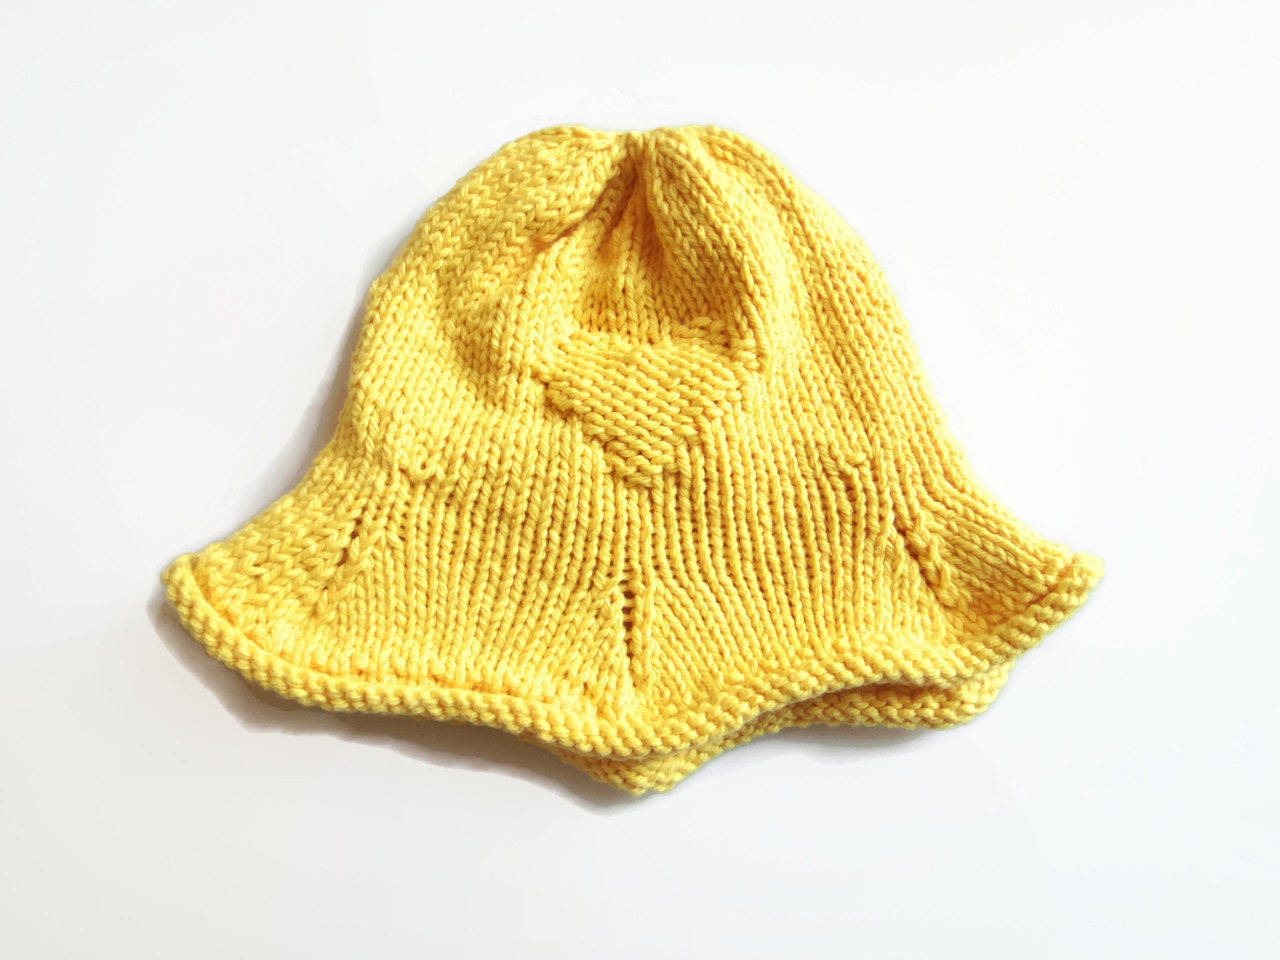 Knitting Pattern For Baby Sun Hat : Baby Sun Hat Knit Sun Hat 3-6 Month Baby Hat by PreciousBowtique